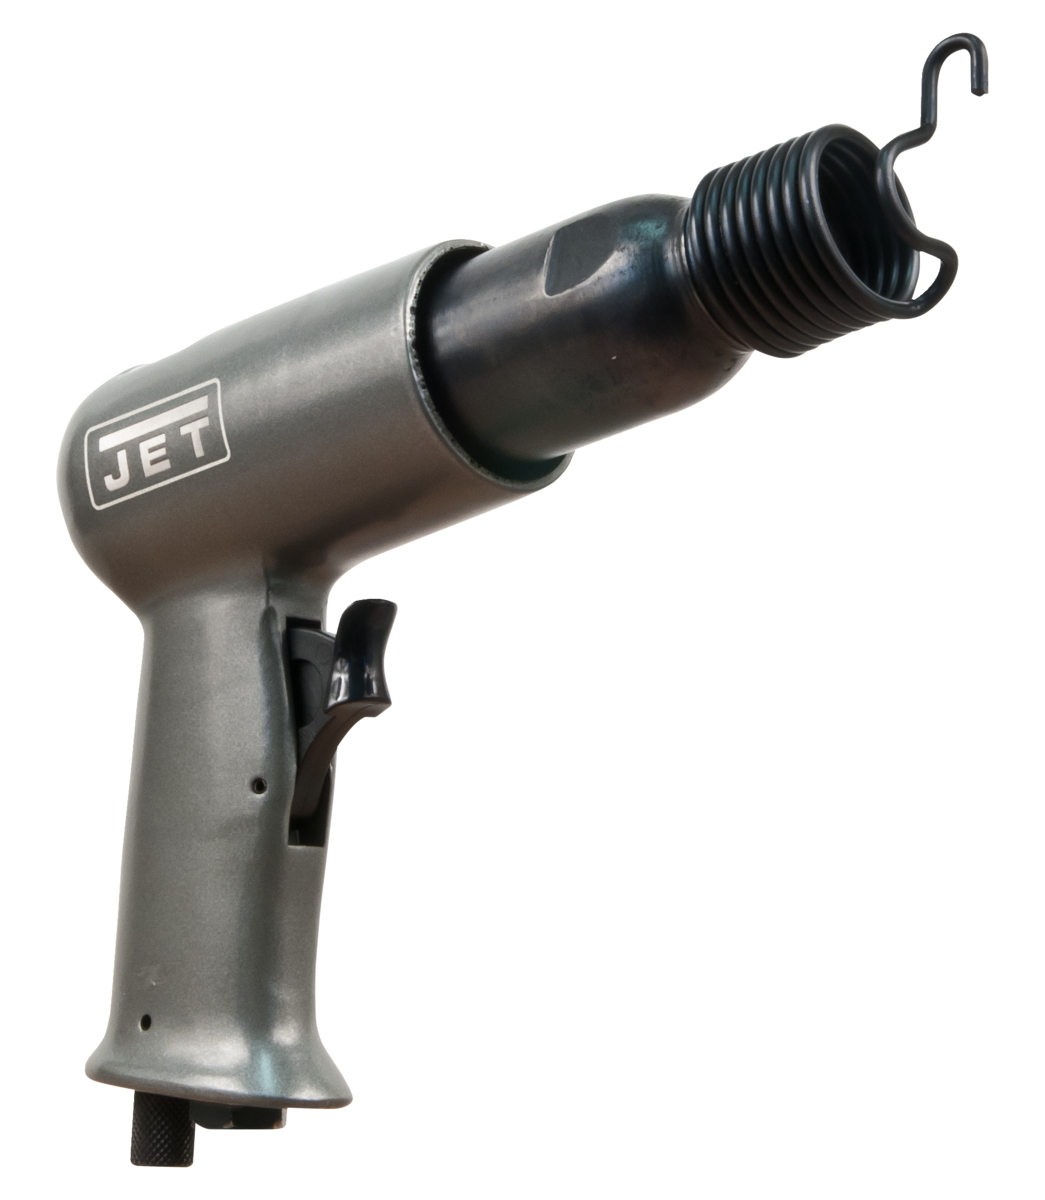 "JAT-901, 2-5/8"" Stroke, Medium Air Hammer"